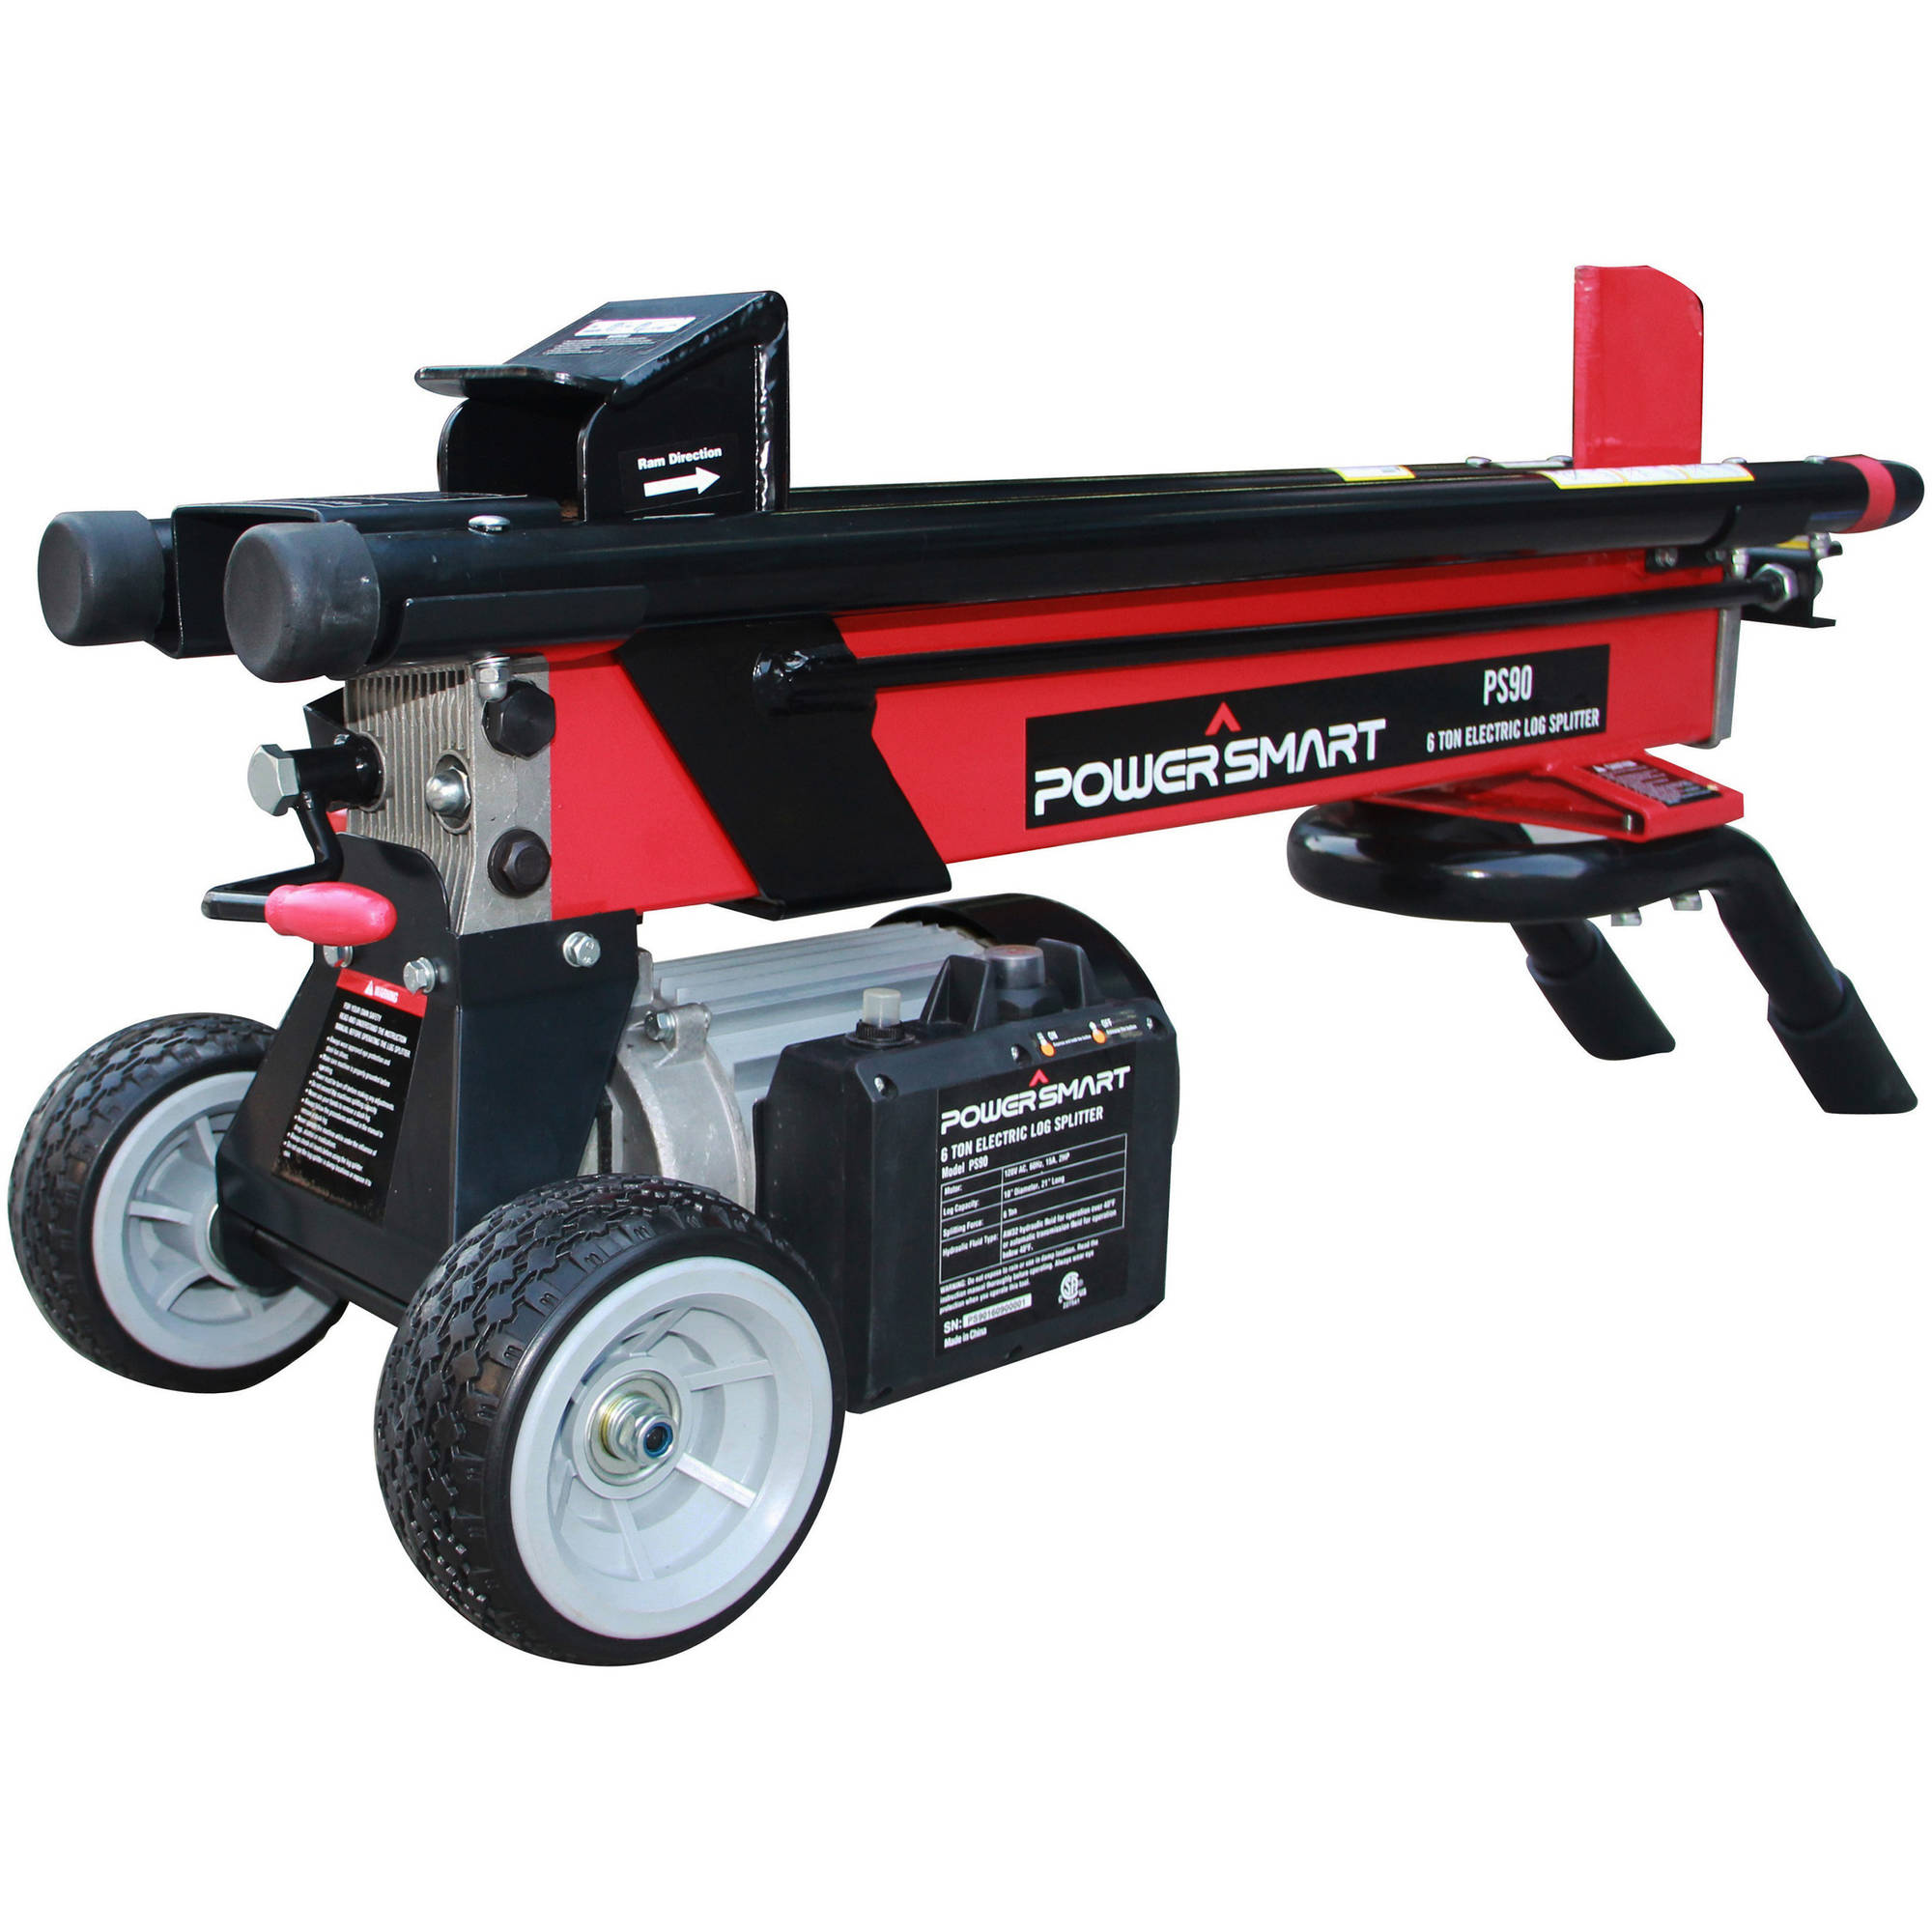 Power Smart PS90 6 Ton 15 Amp Electric Log Splitter by Amerisun Inc.